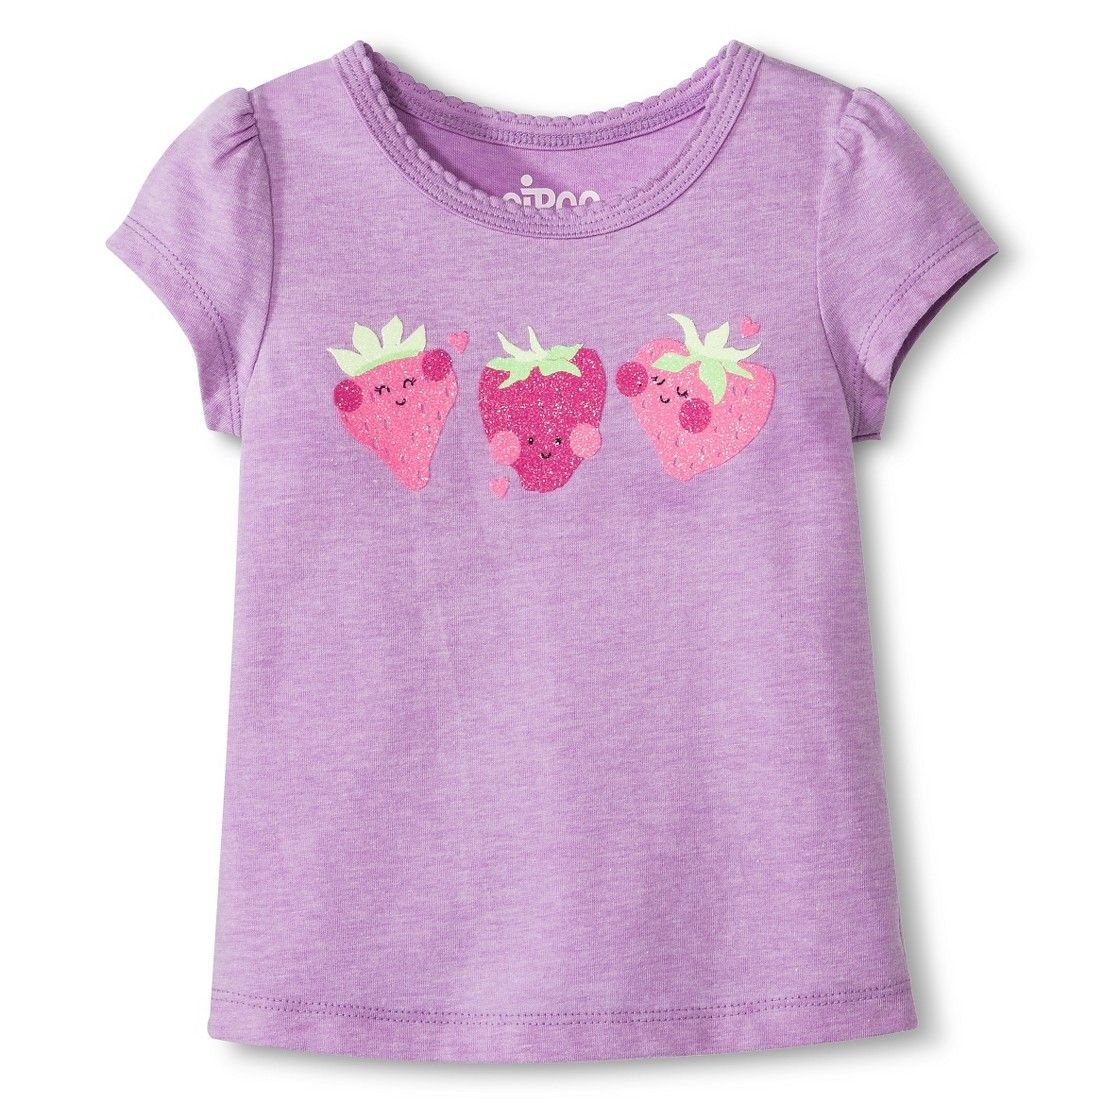 Toddler Girls' Strawberry Tee Violet Baby girl clothes